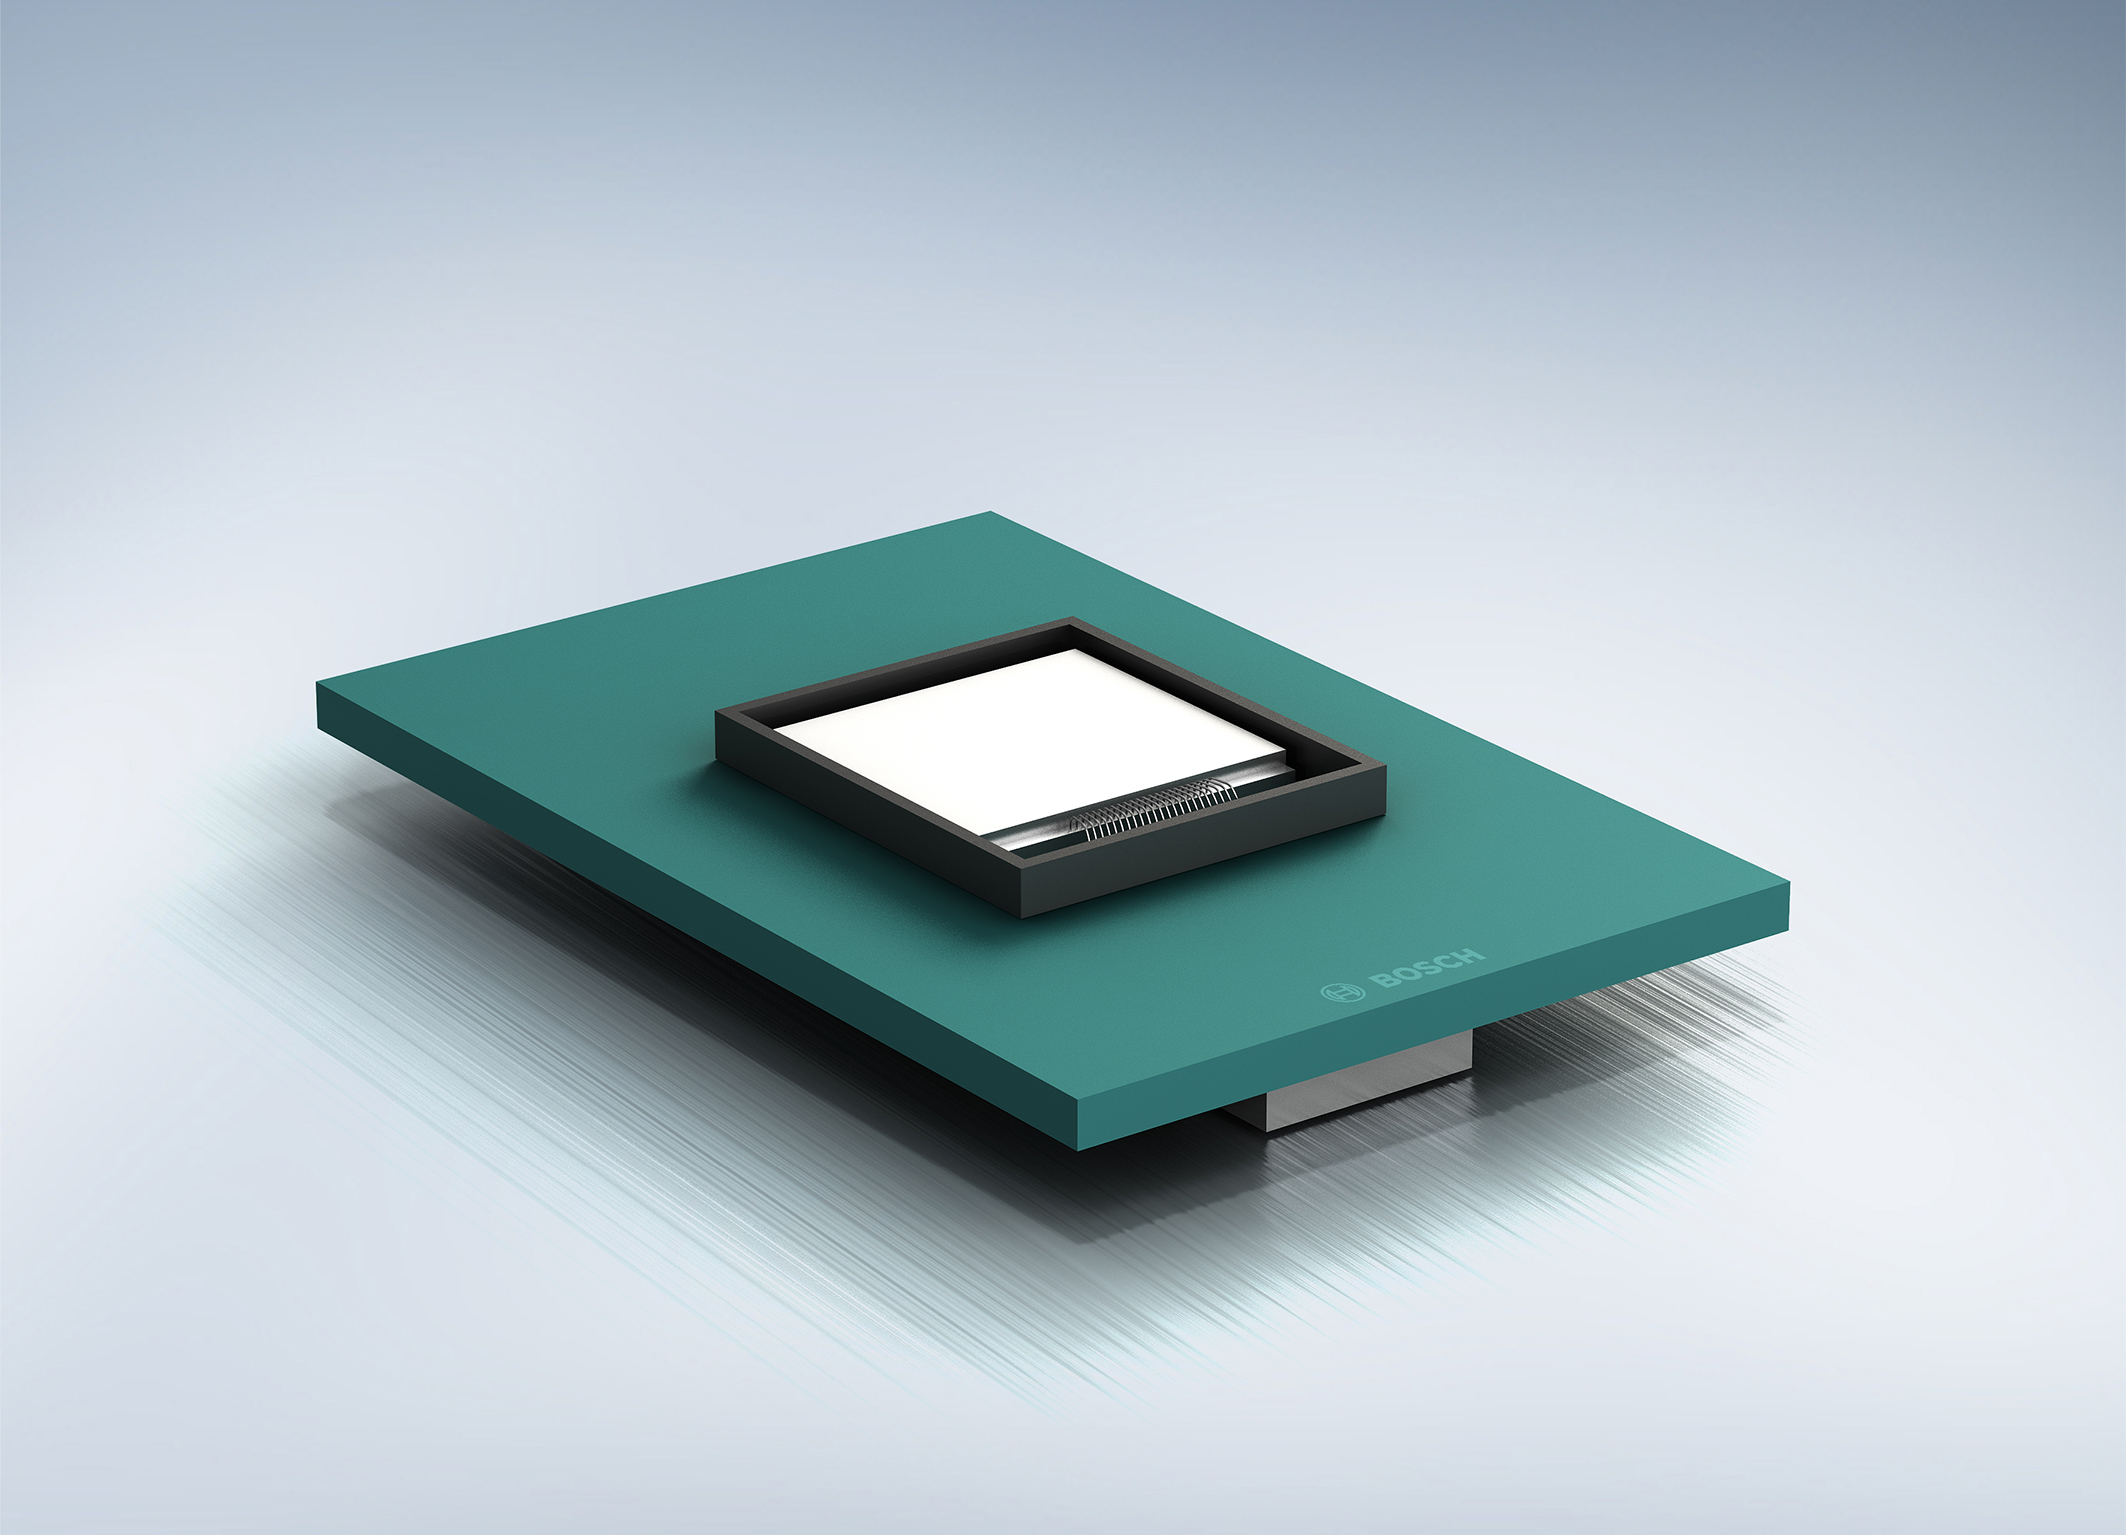 Bosch Unveils 82 X 62 Pixel Far Infrared Sensor Smo130 Media Using An Camera To Find Overloaded Circuit Structure Tech With